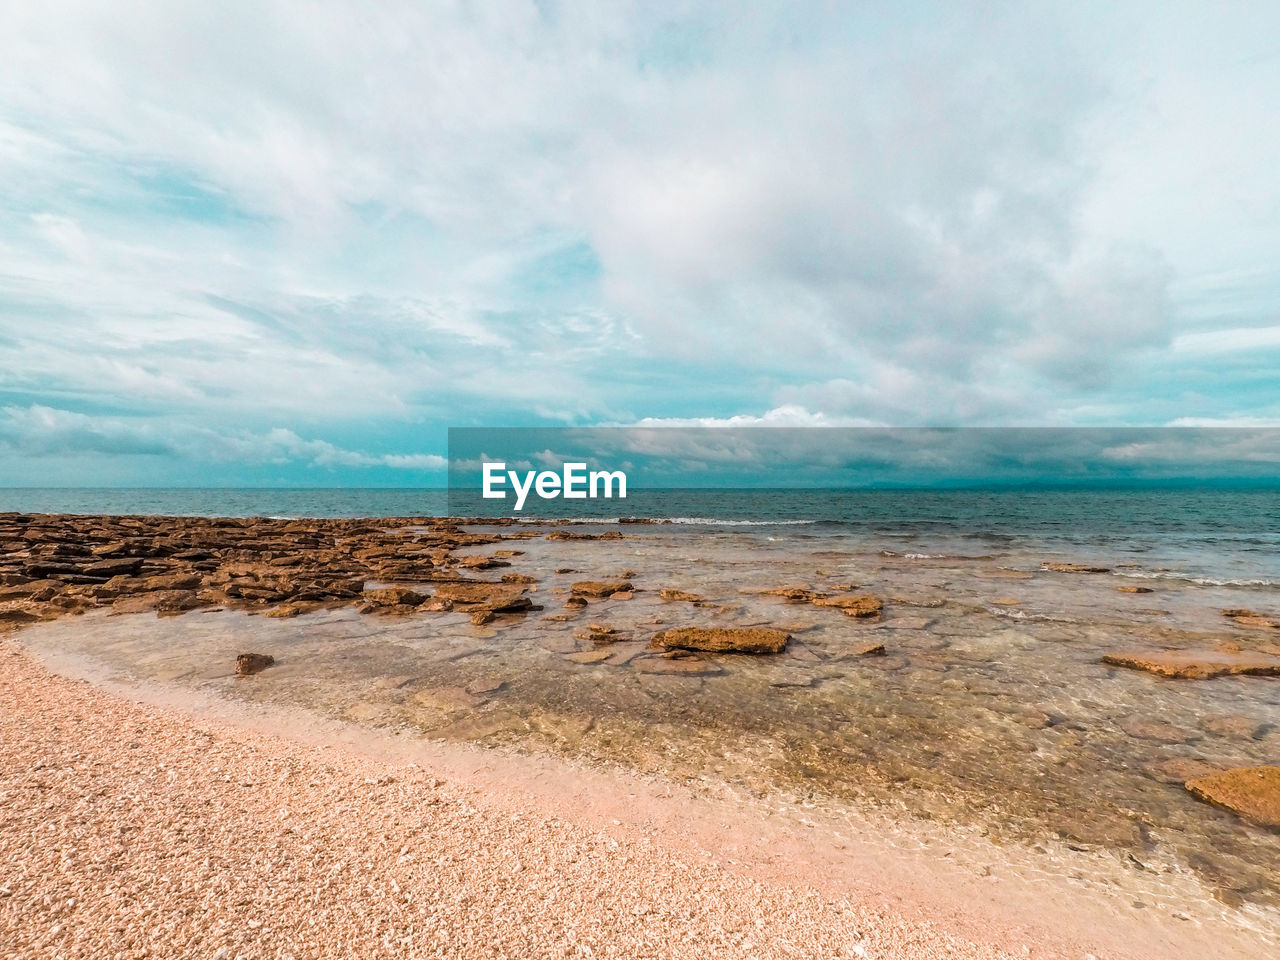 sea, sky, scenics, horizon over water, water, nature, beauty in nature, tranquility, cloud - sky, beach, tranquil scene, outdoors, sand, day, no people